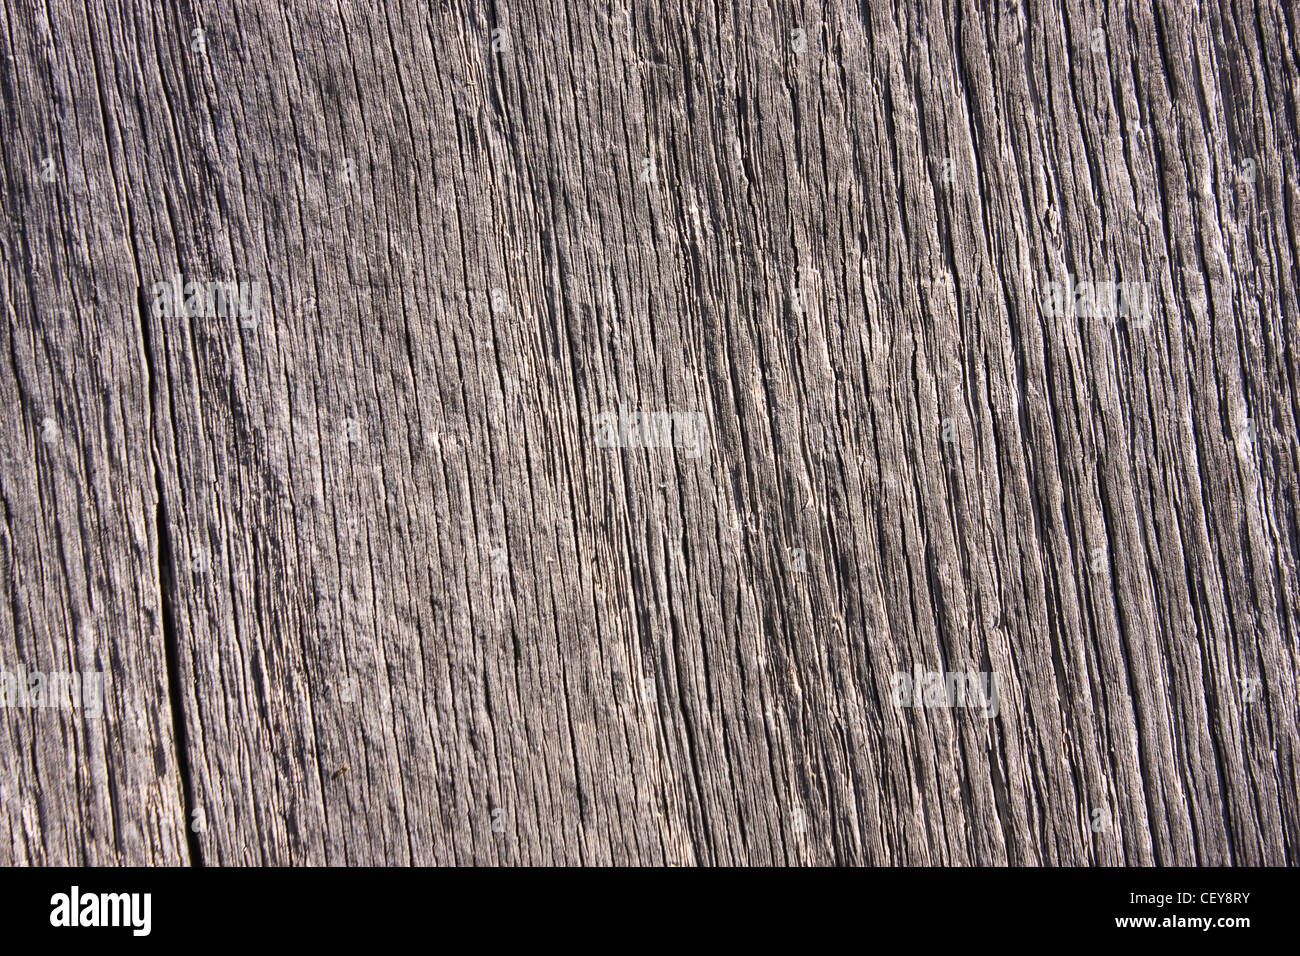 Texture of an wood board, details visible - Stock Image